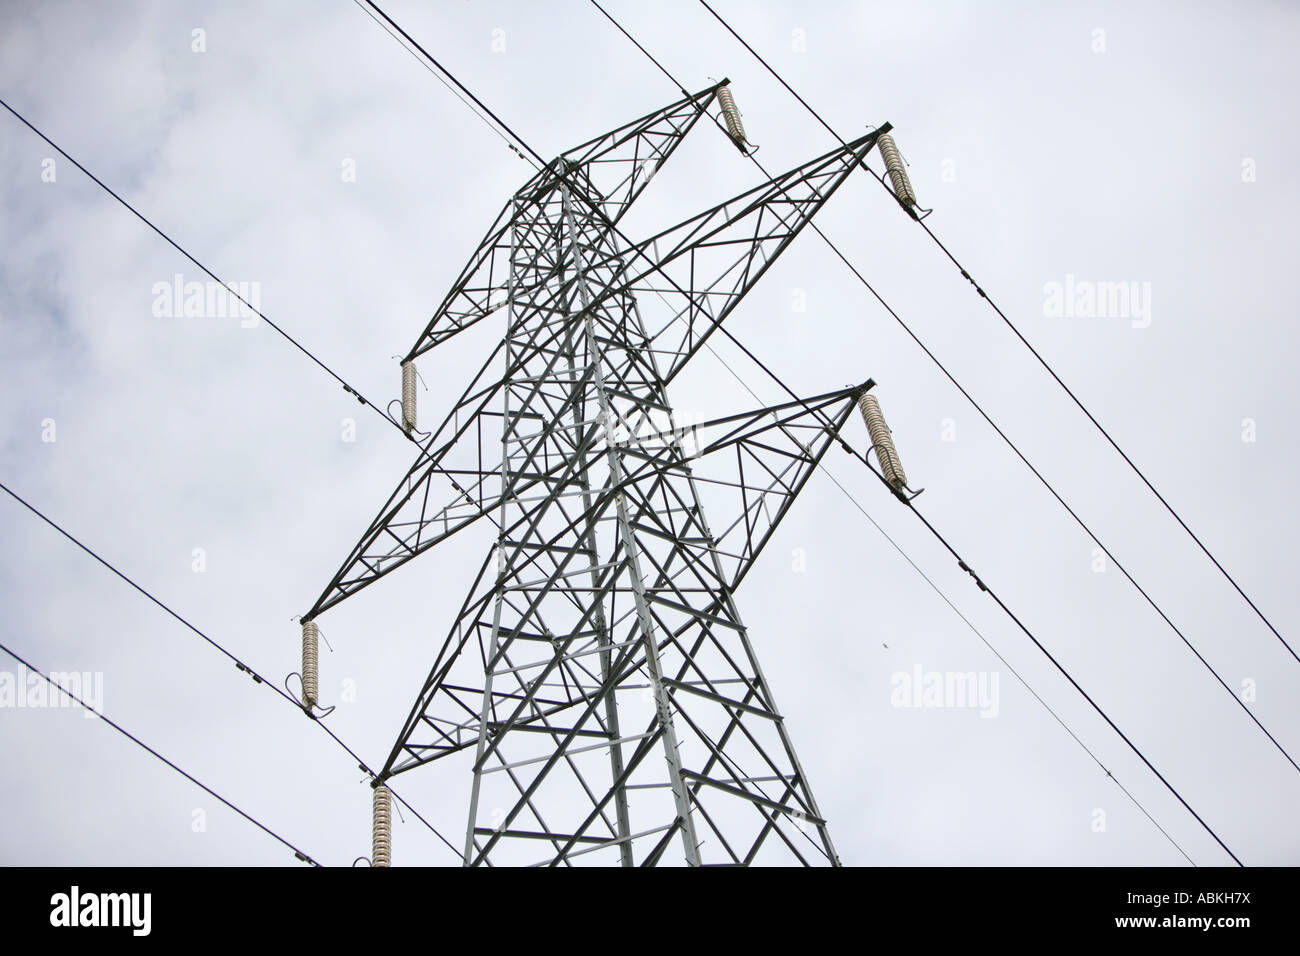 High power lines hang from Pylons, some have health concerns about ...